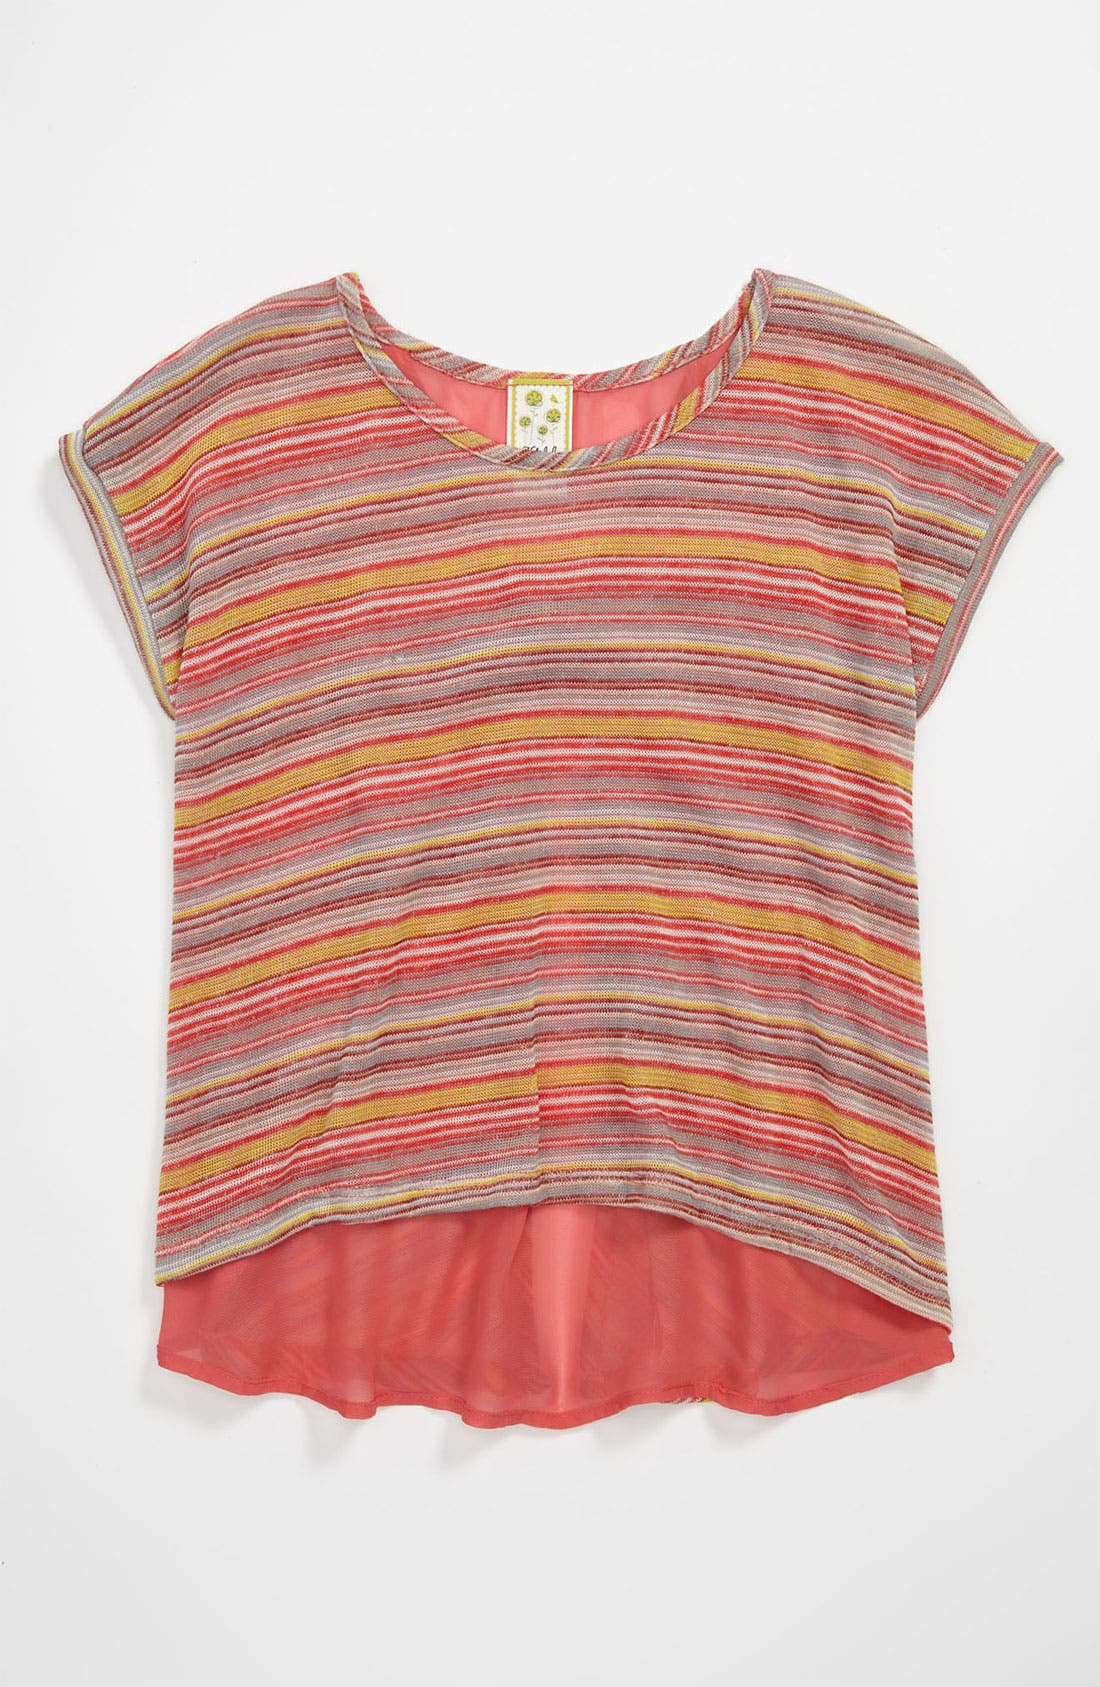 Main Image - Kiddo Stripe Top (Little Girls)